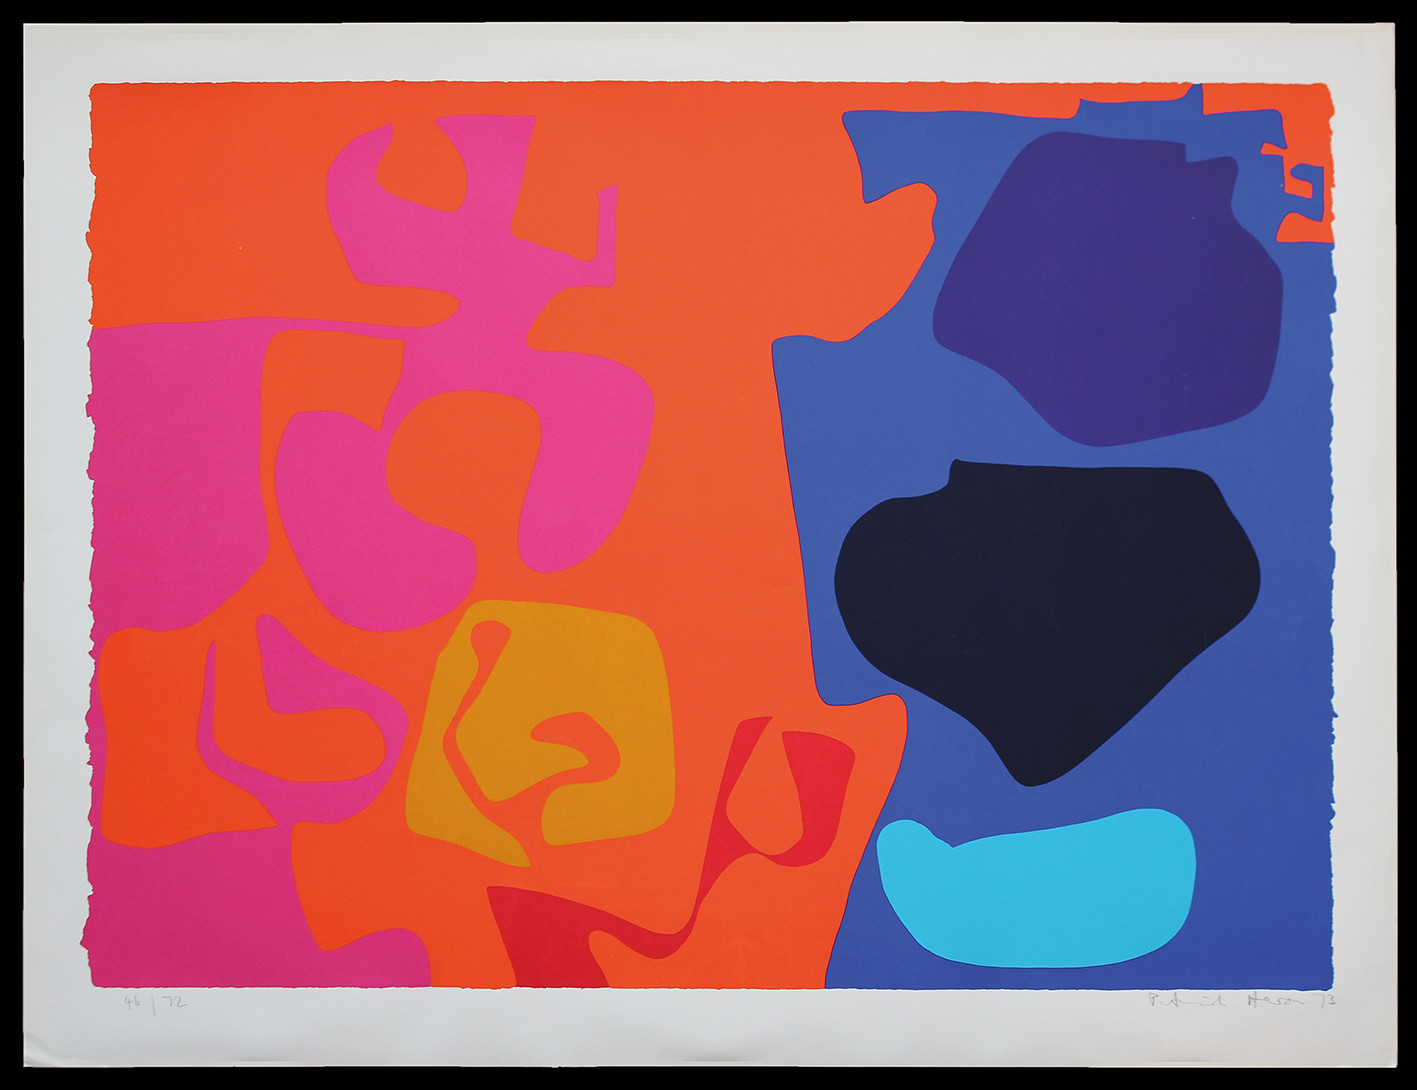 <span class=&#34;link fancybox-details-link&#34;><a href=&#34;/artists/93-patrick-heron-cbe/works/4931-patrick-heron-cbe-january-1973-8-1973/&#34;>View Detail Page</a></span><div class=&#34;artist&#34;><strong>Patrick Heron CBE</strong></div> 1920 – 1999 <div class=&#34;title&#34;><em>January 1973 : 8</em>, 1973</div> <div class=&#34;signed_and_dated&#34;>signed, dated and numbered in pencil</div> <div class=&#34;medium&#34;>silkscreen print in colours on wove paper, with full margins</div> <div class=&#34;dimensions&#34;>Image size: 58 x 71 cm<br /> 22 7/8 x 28 inches<br /> sheet size: 70 x 91.4 cm<br /> 27 1/2 x 36 in</div> <div class=&#34;edition_details&#34;>Edition 46 of 72</div><div class=&#34;copyright_line&#34;>© The Estate of Patrick Heron</div>